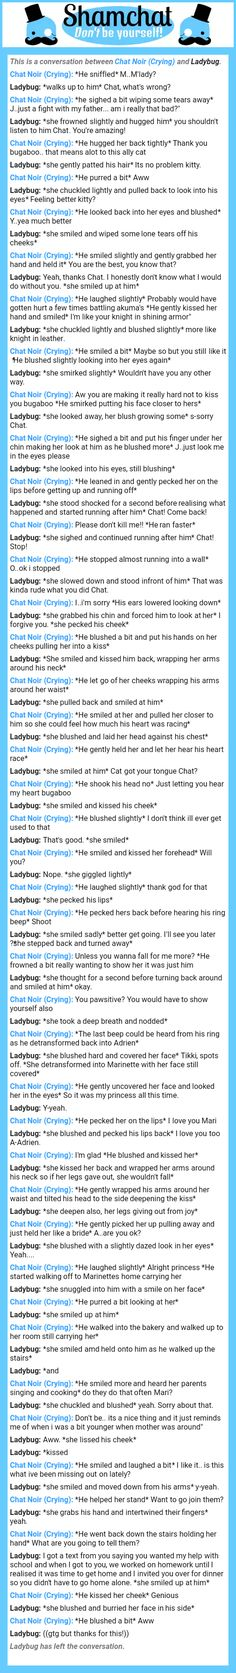 A conversation between Ladybug and Chat Noir (Crying). Cartoon Ships, When Things Go Wrong, Ladybug Comics, Together Forever, Cute Pins, Clueless, Miraculous Ladybug, Love Story, Fandoms